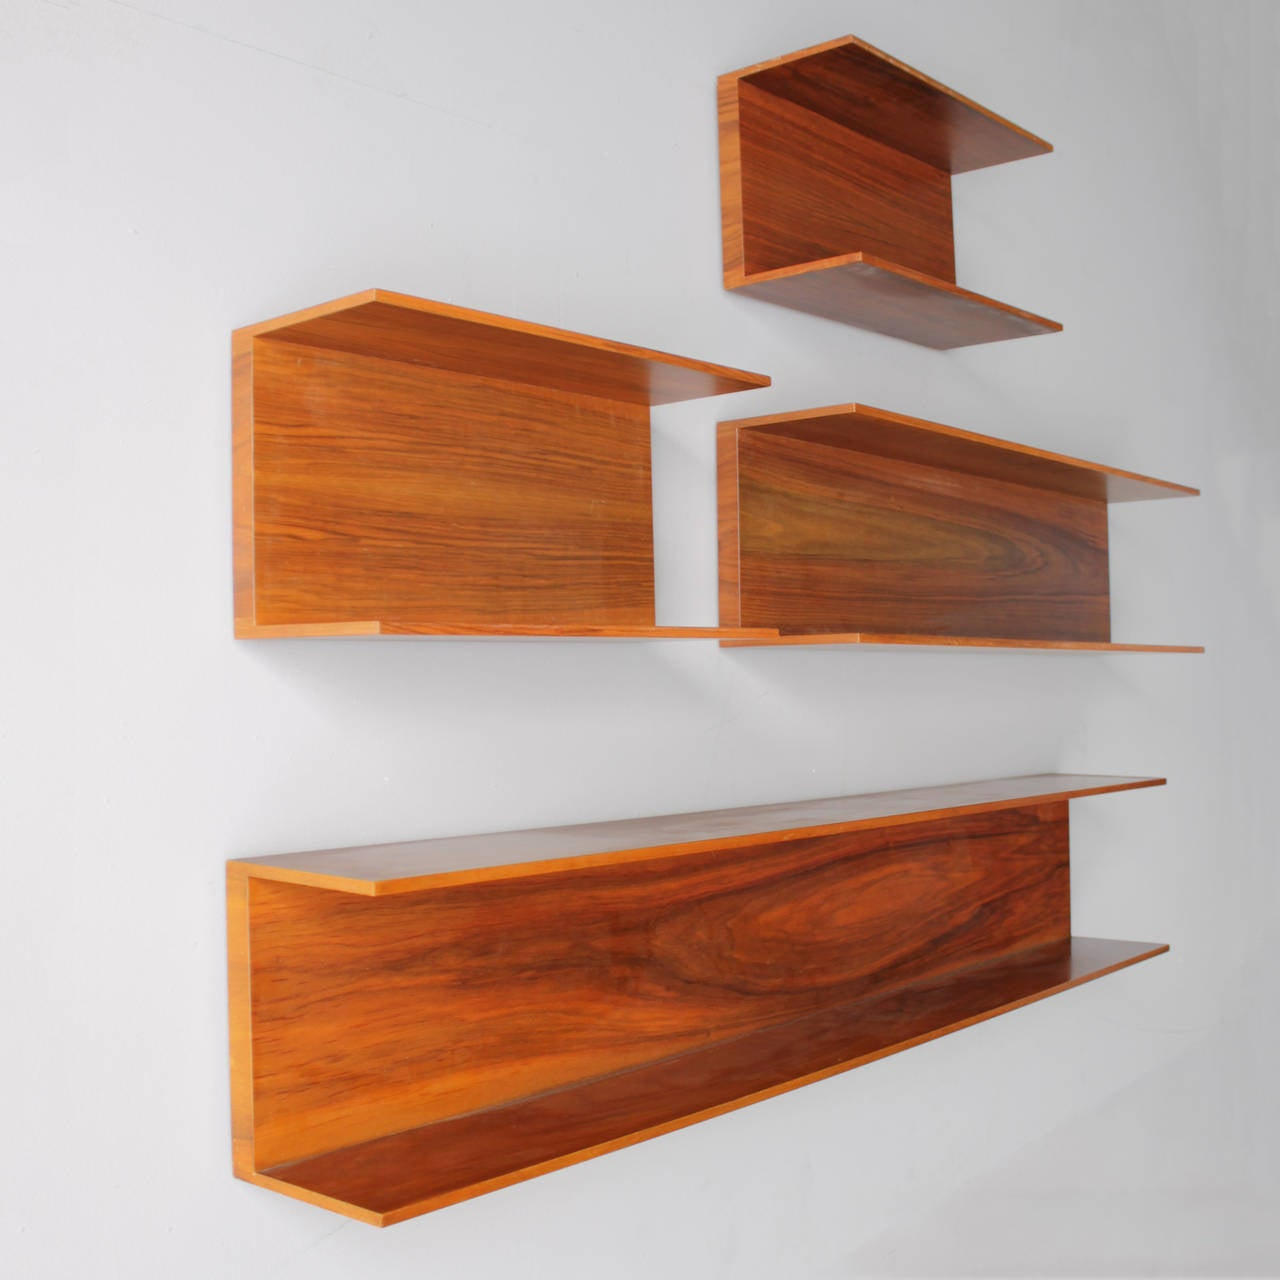 Marvelous photograph of Wall Shelves by Wilhelm Renz in Walnut For Sale at 1stdibs with #B14D1A color and 1280x1280 pixels